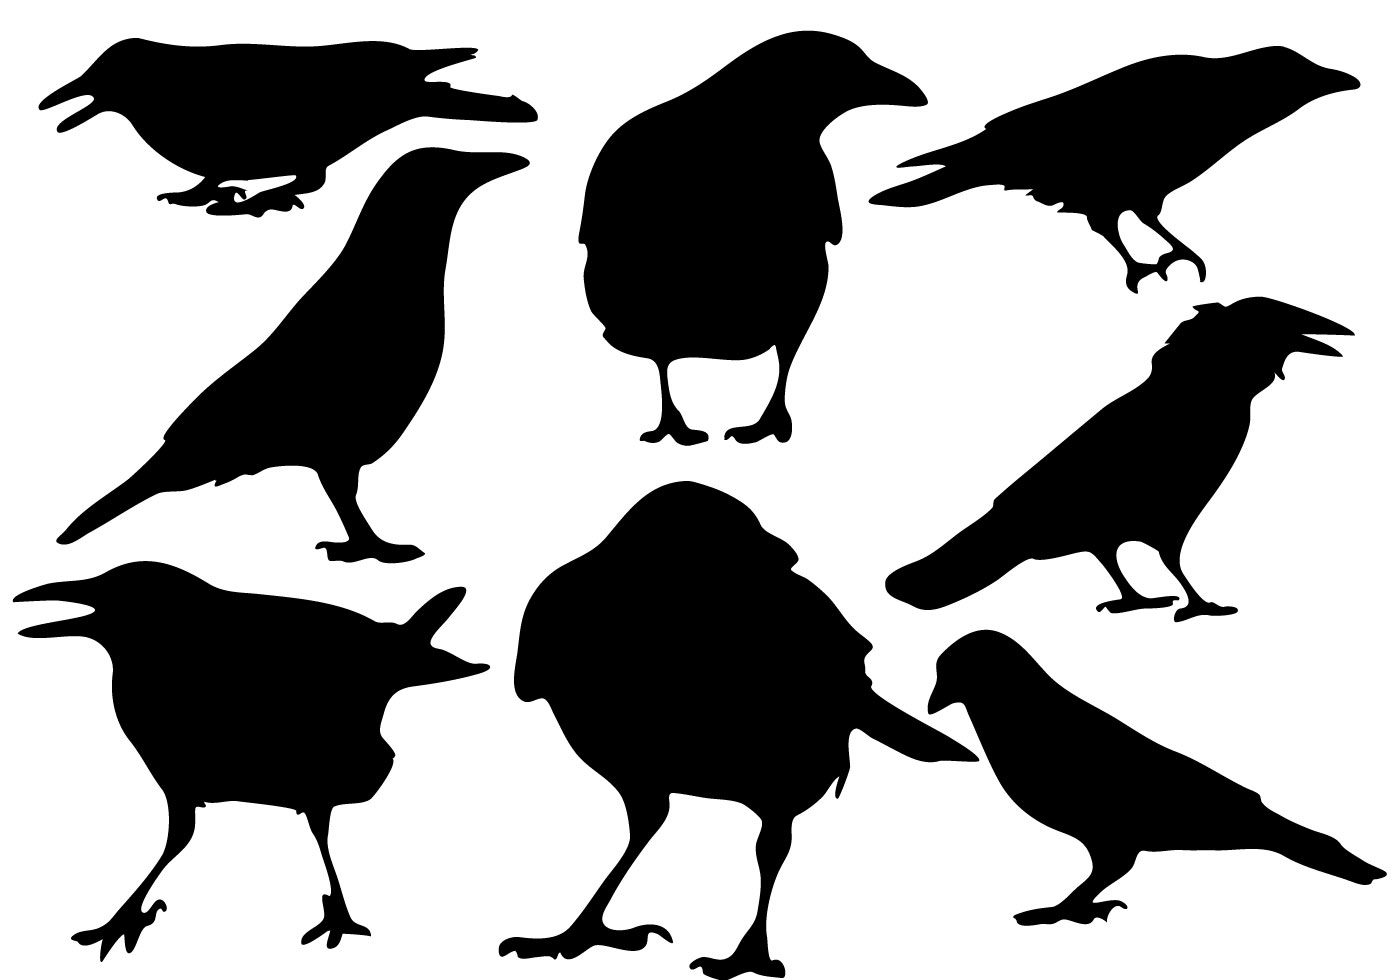 Free Raven Silhouette Vector - Download Free Vector Art, Stock ...